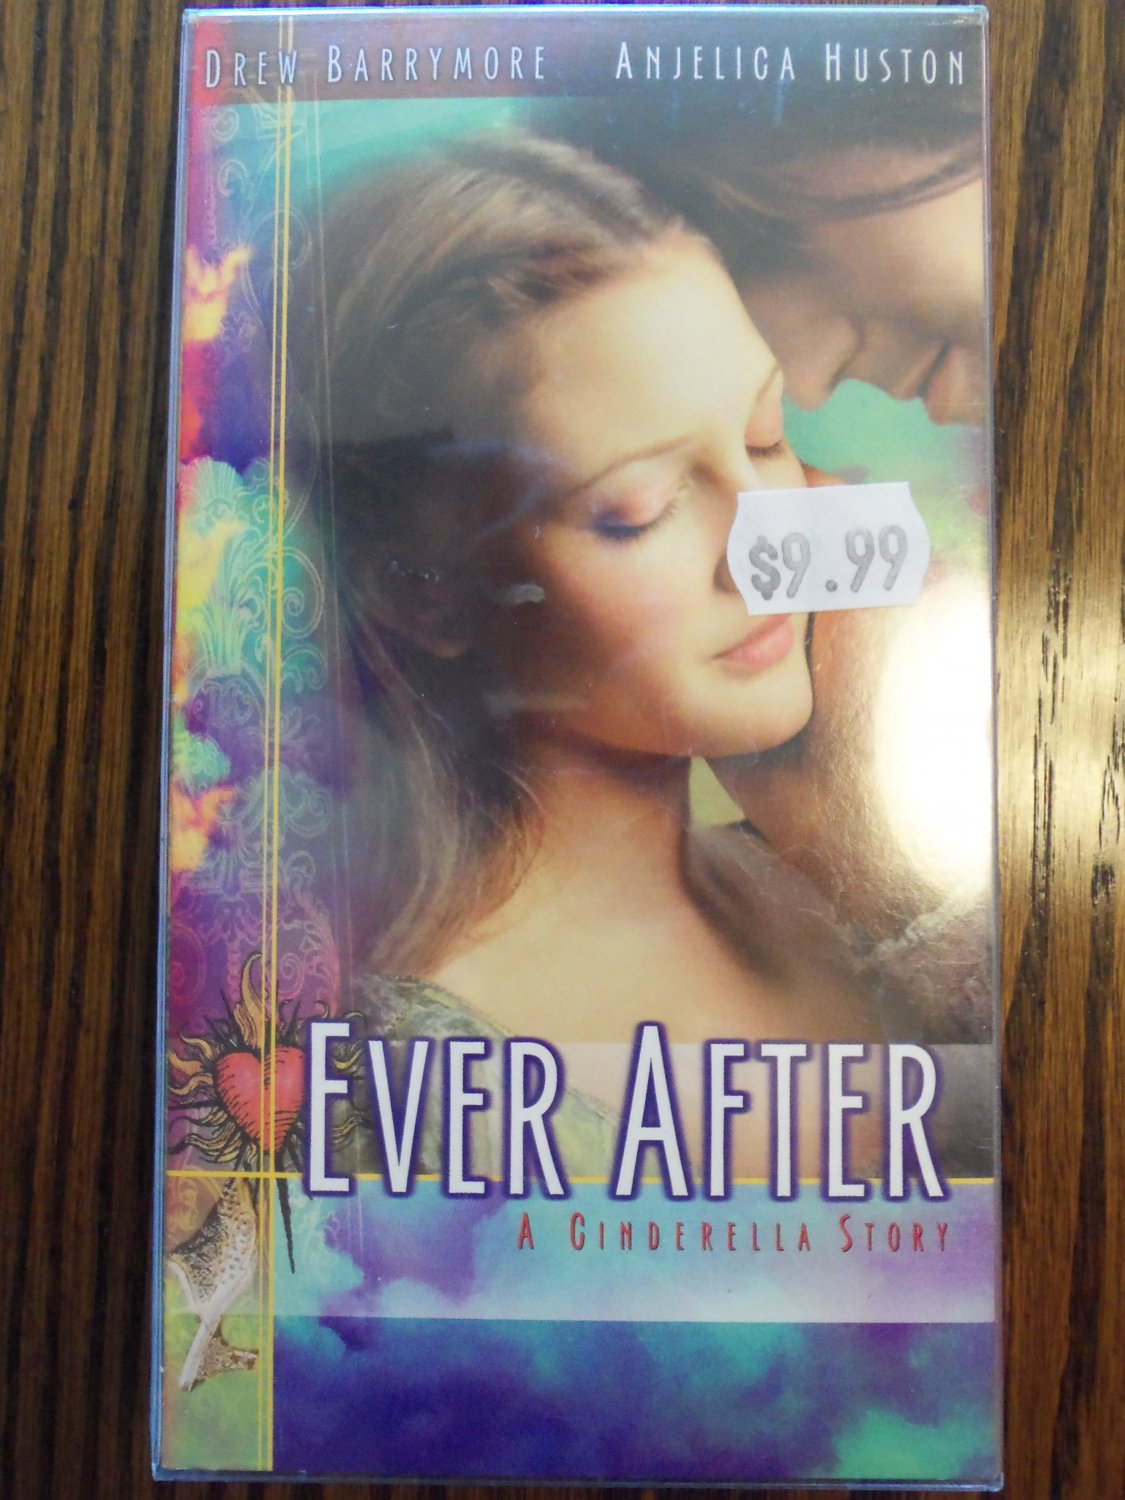 Ever After A Cinderella Story Drew Barrymore Family VHS ...